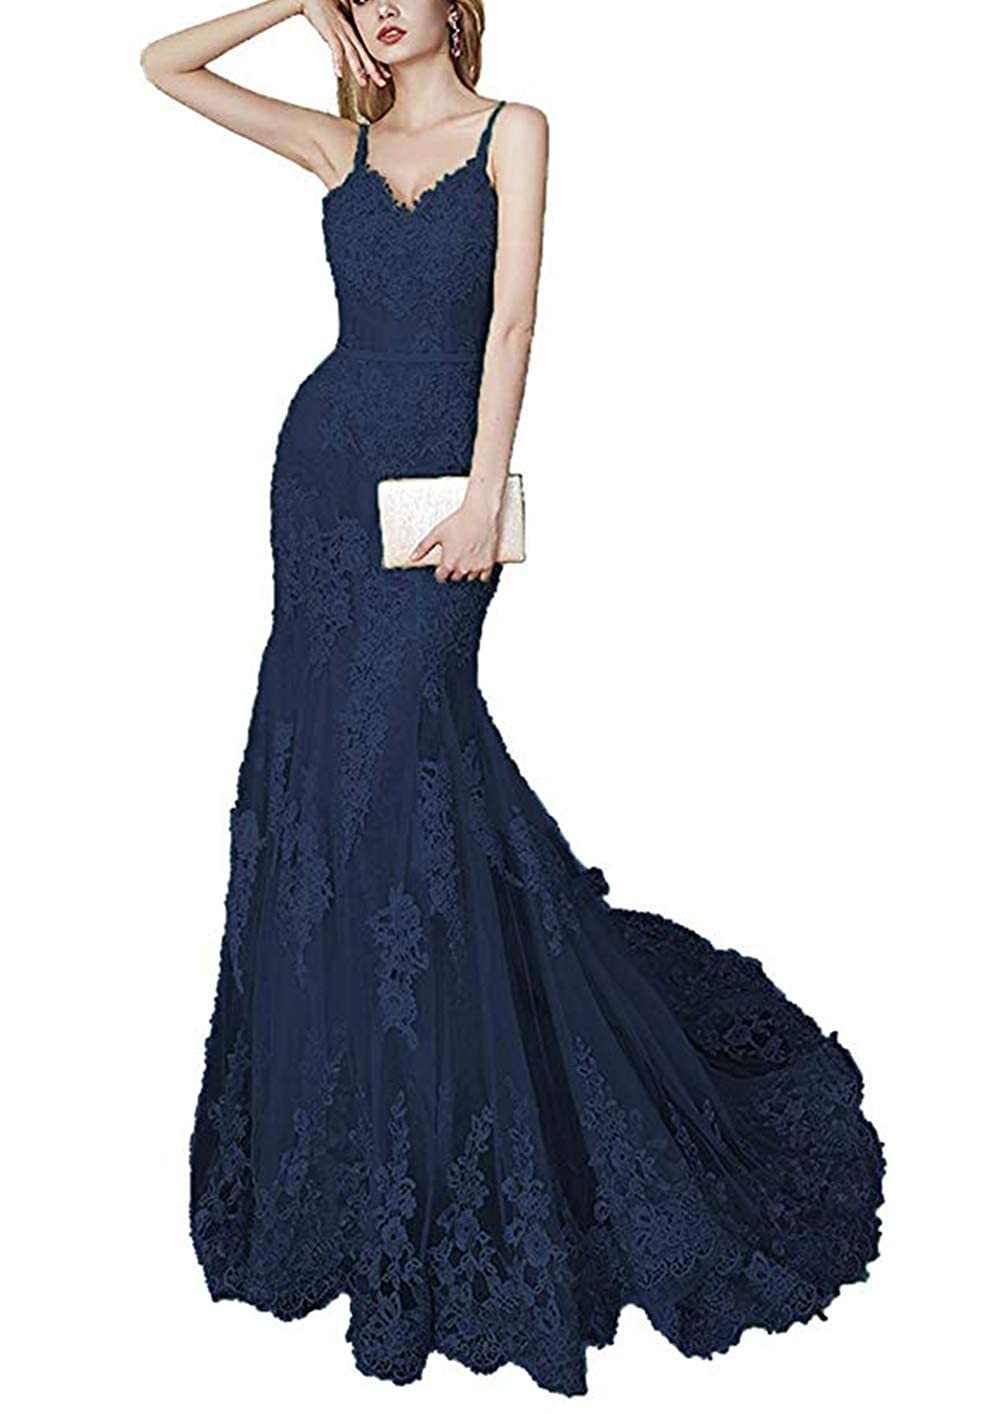 Navy bluee formalmall Women's Spaghetti Straps Mermaid Prom Dresses Long 2019 Lace Celebrity Wedding Gown with Train